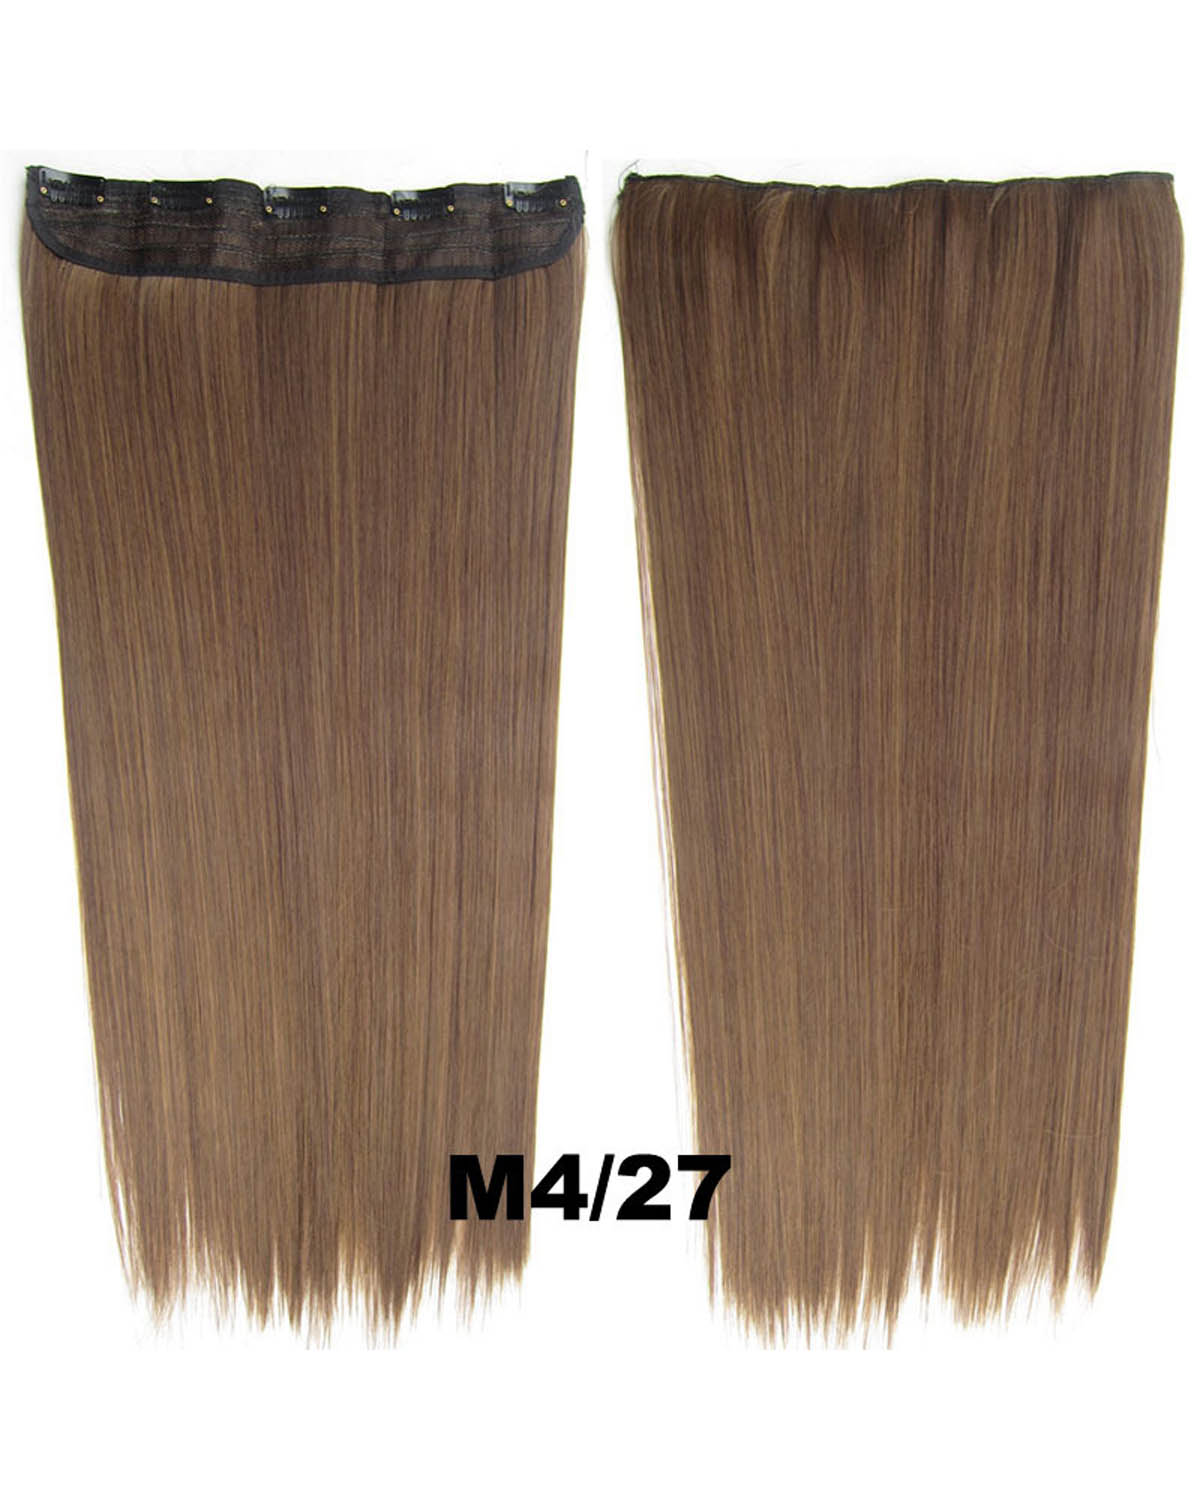 24 Inch Female Salable Long and Straight  One Piece 5 Clips Clip in Synthetic Hair Extension  M4/27 60cm 130g